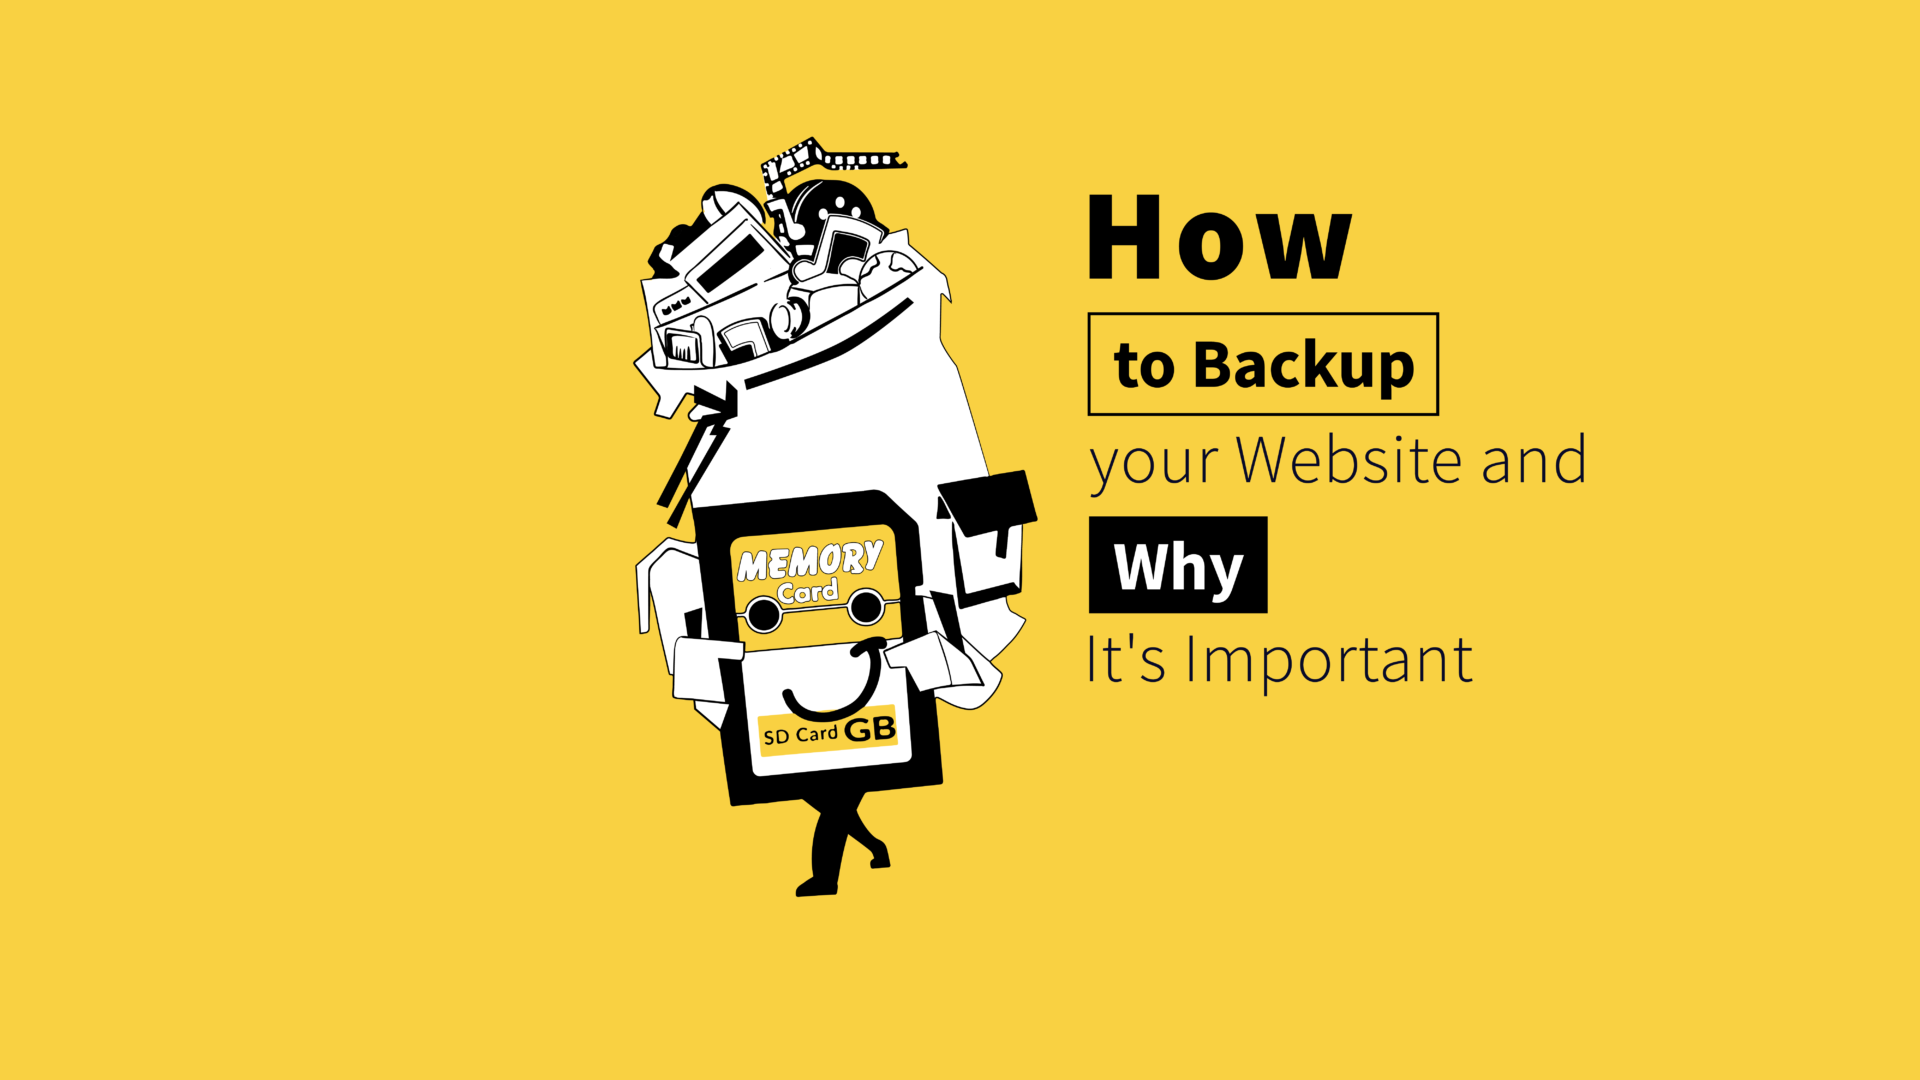 How to Backup your Website and Why It's Important